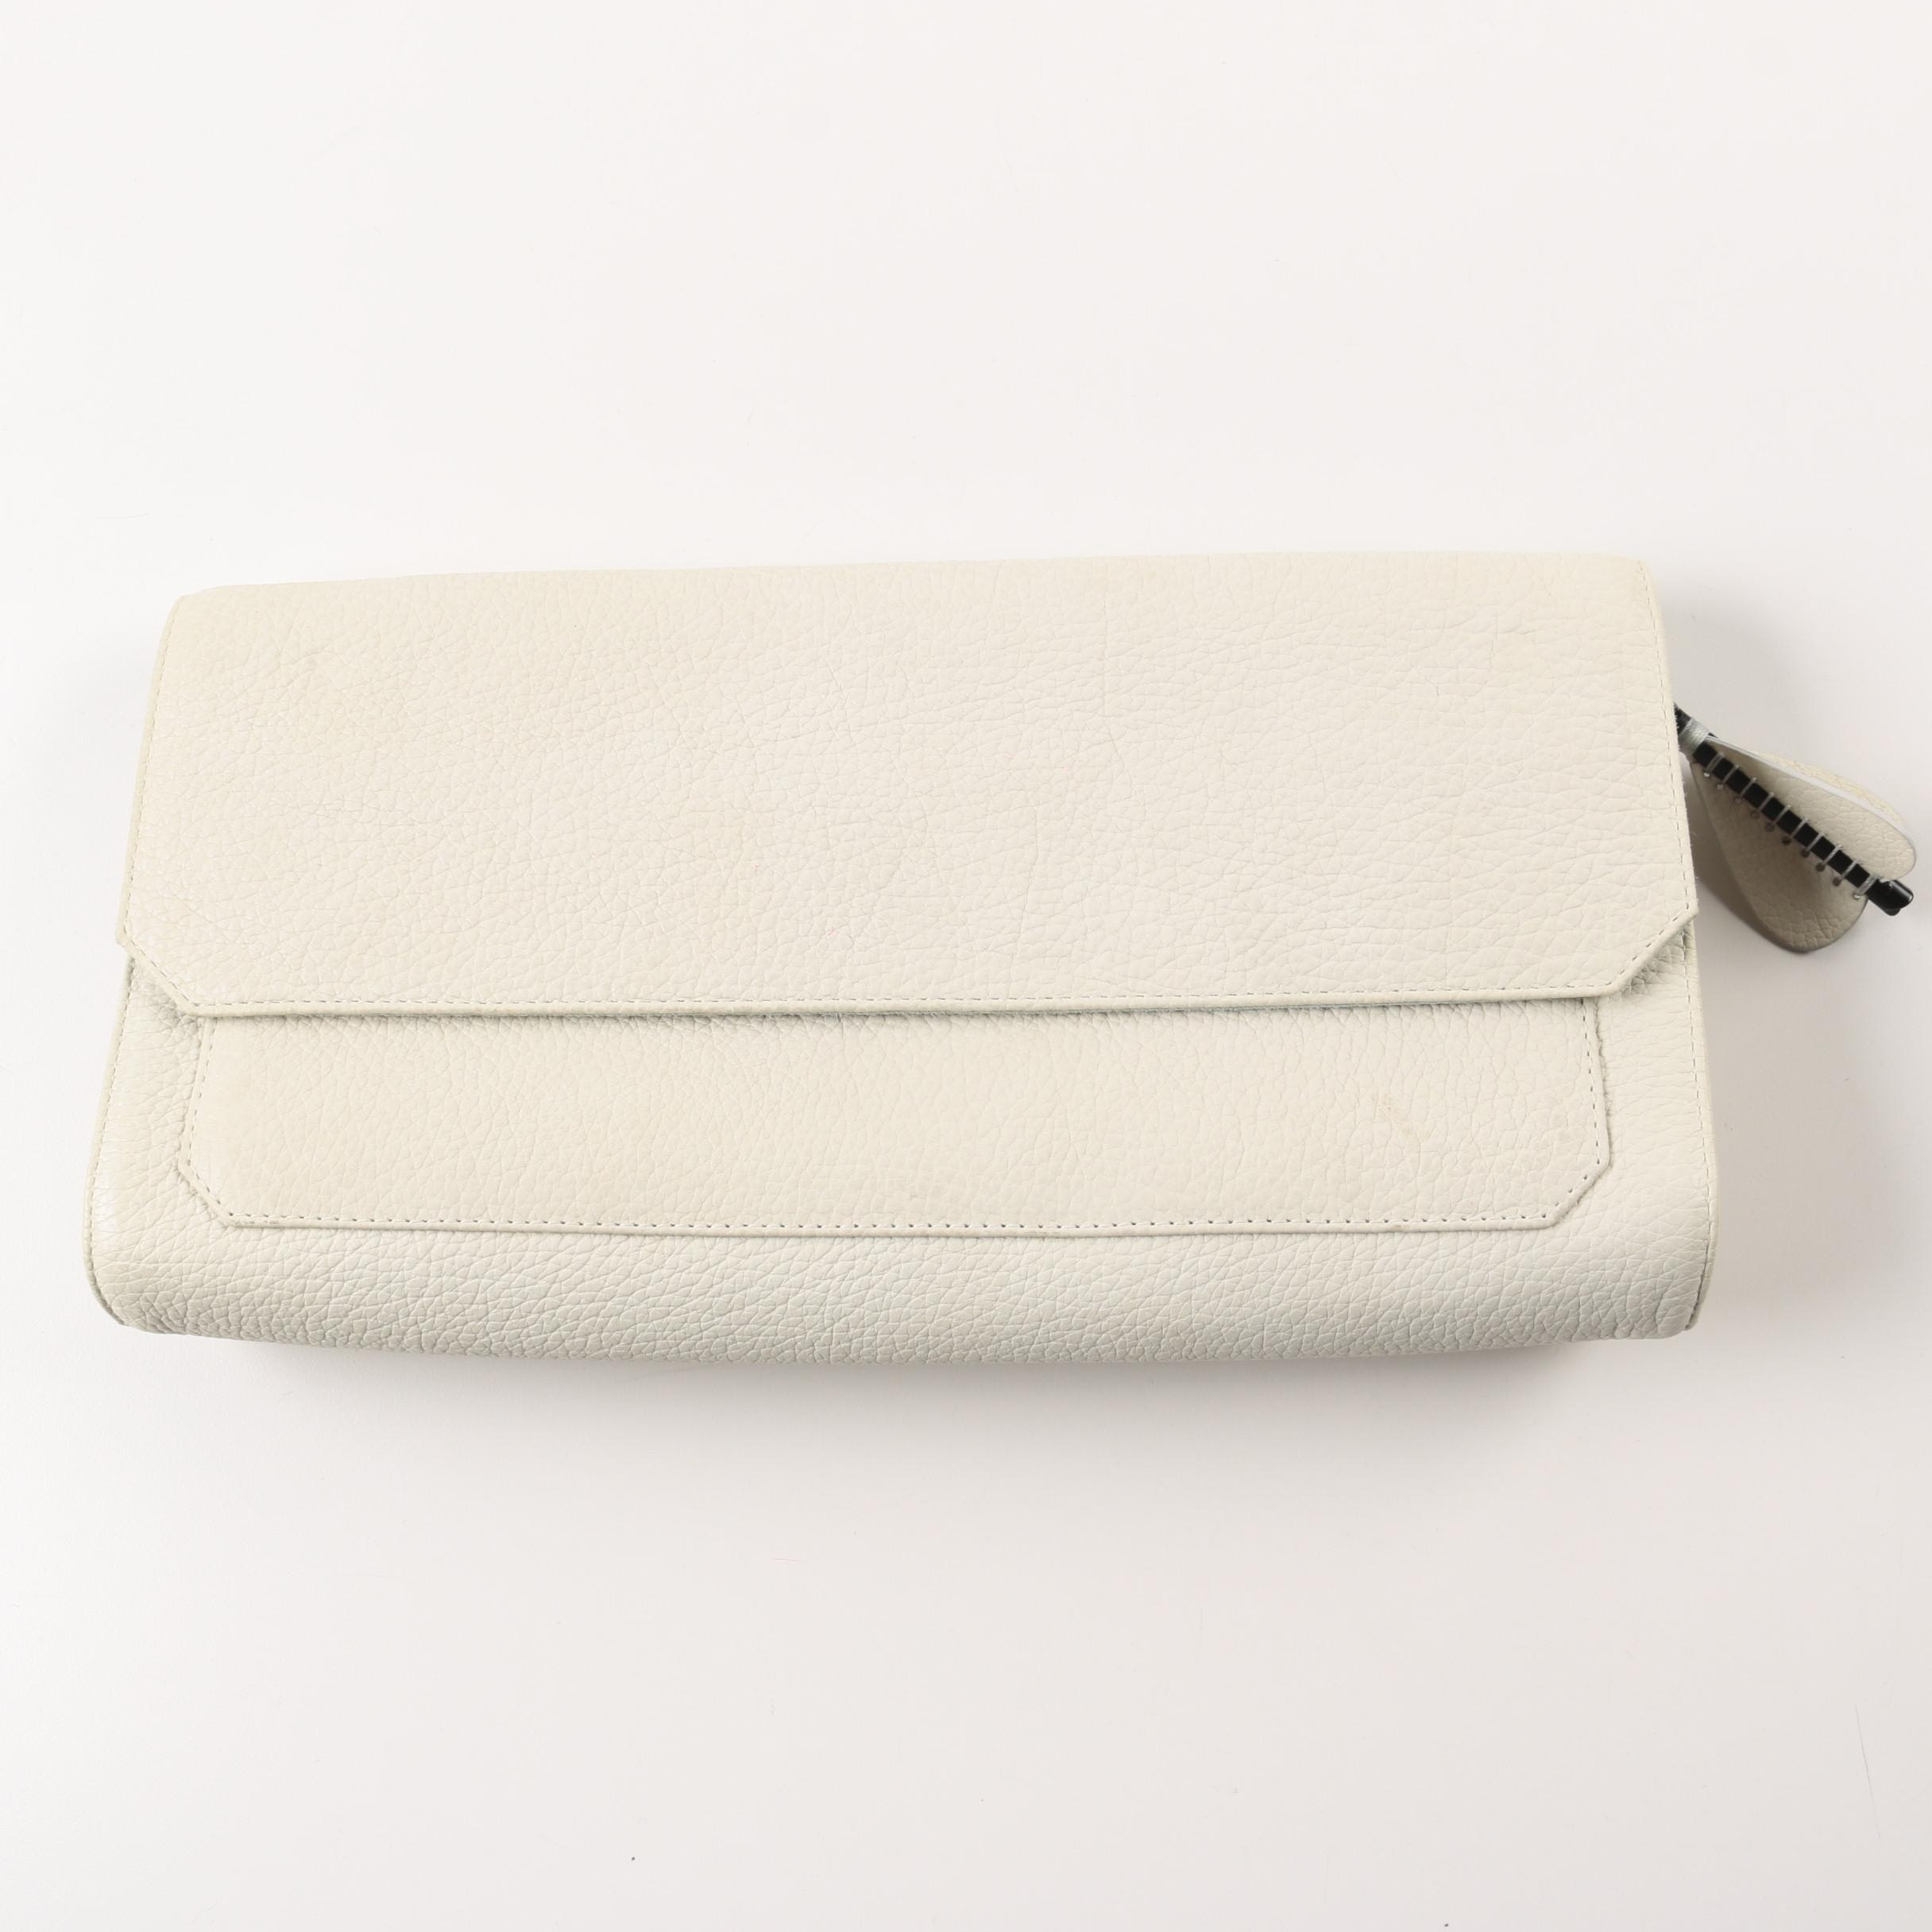 Parabellum White Pebbled Leather Didion Clutch